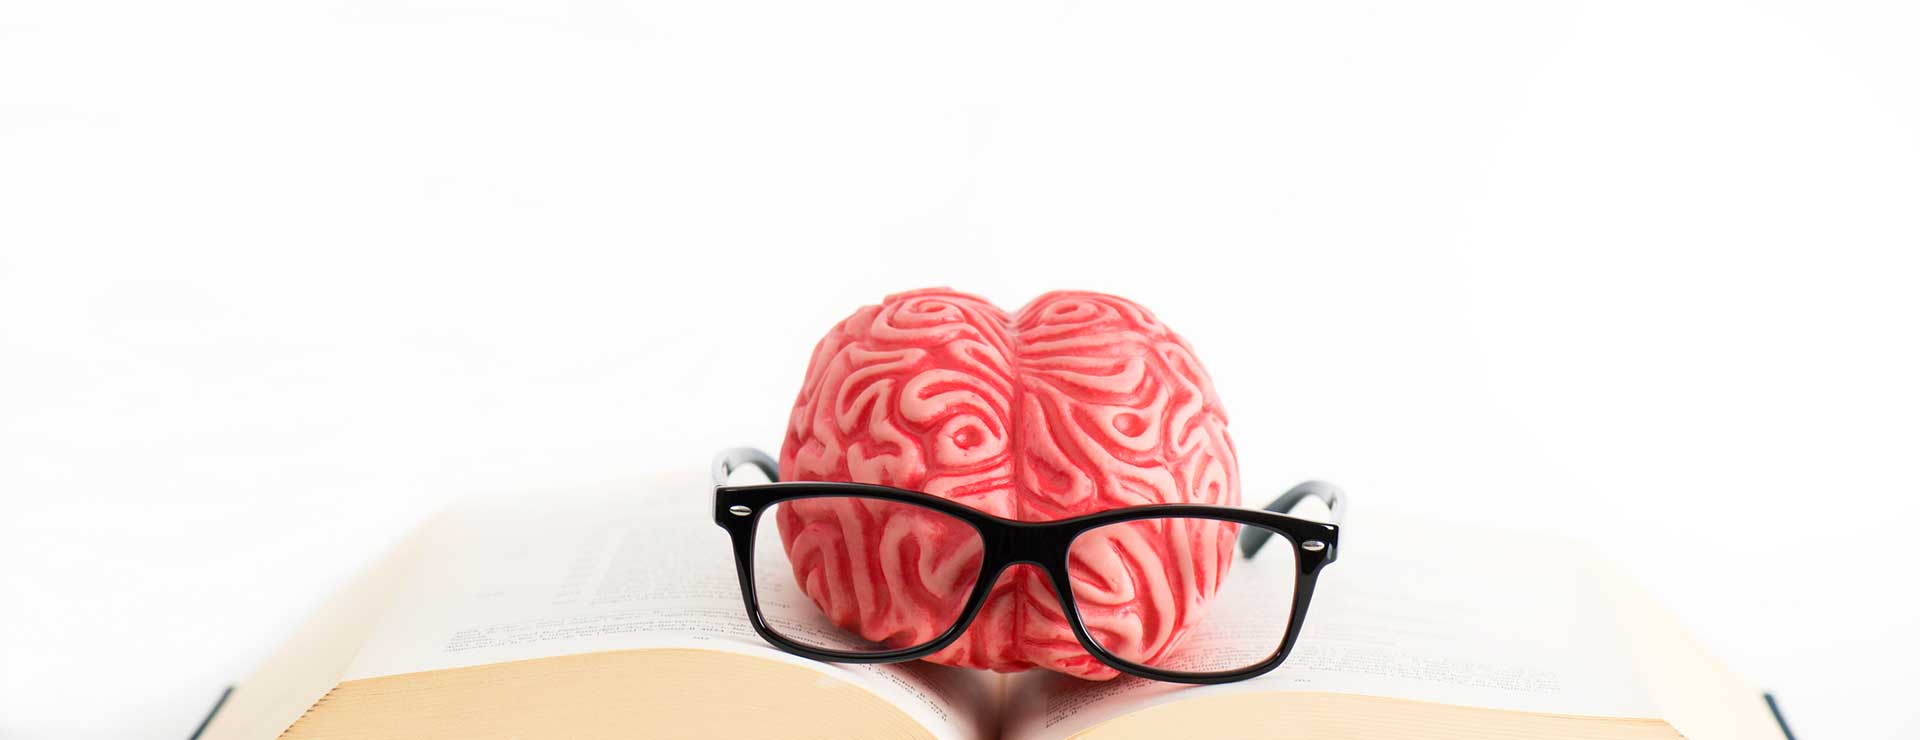 A model of a brain with glasses sitting on top of an open book